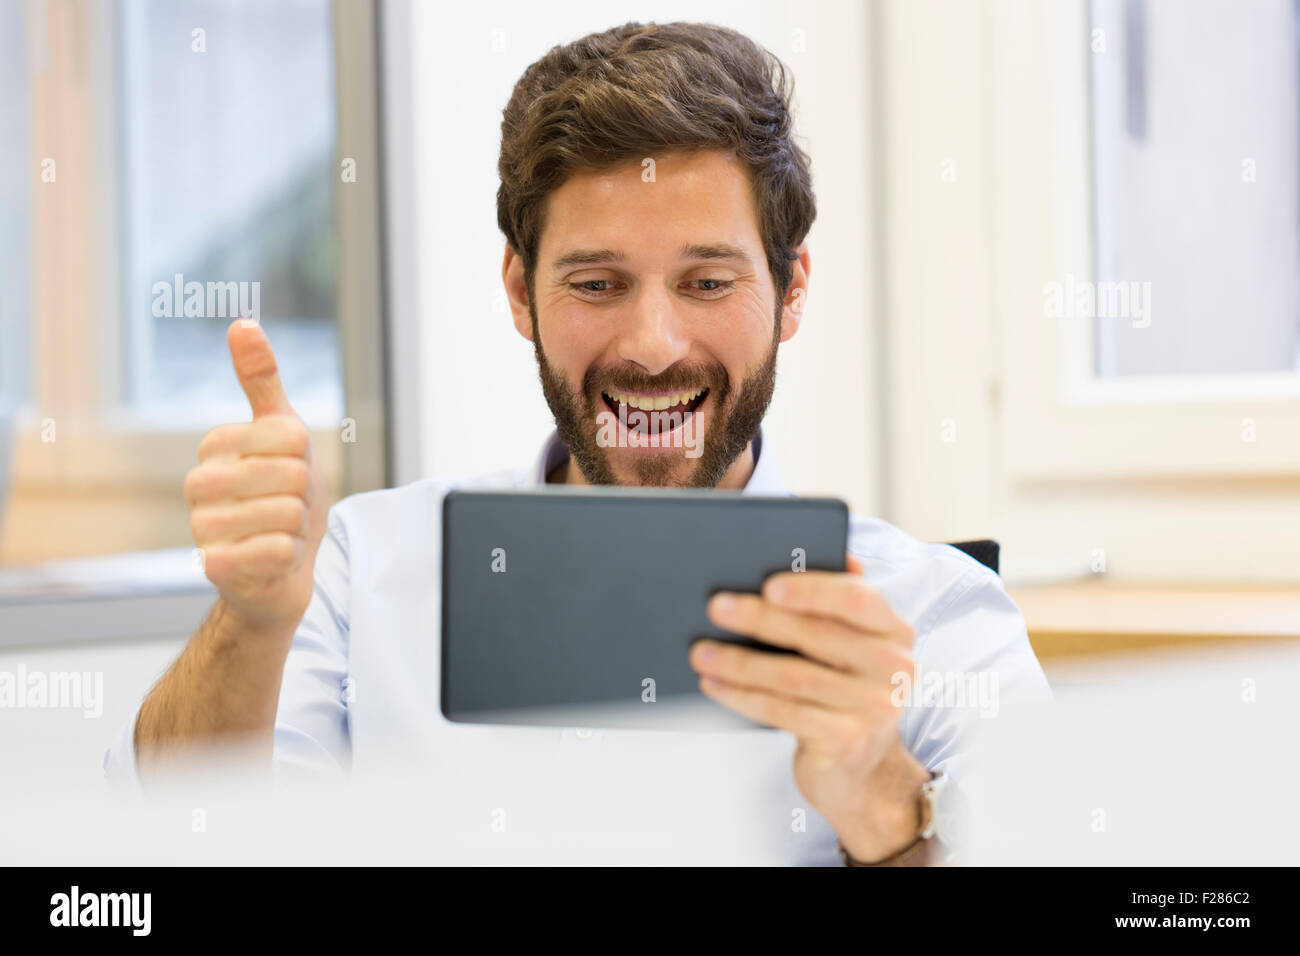 Cheering businessman with thumb up in office using digital tablet Banque D'Images